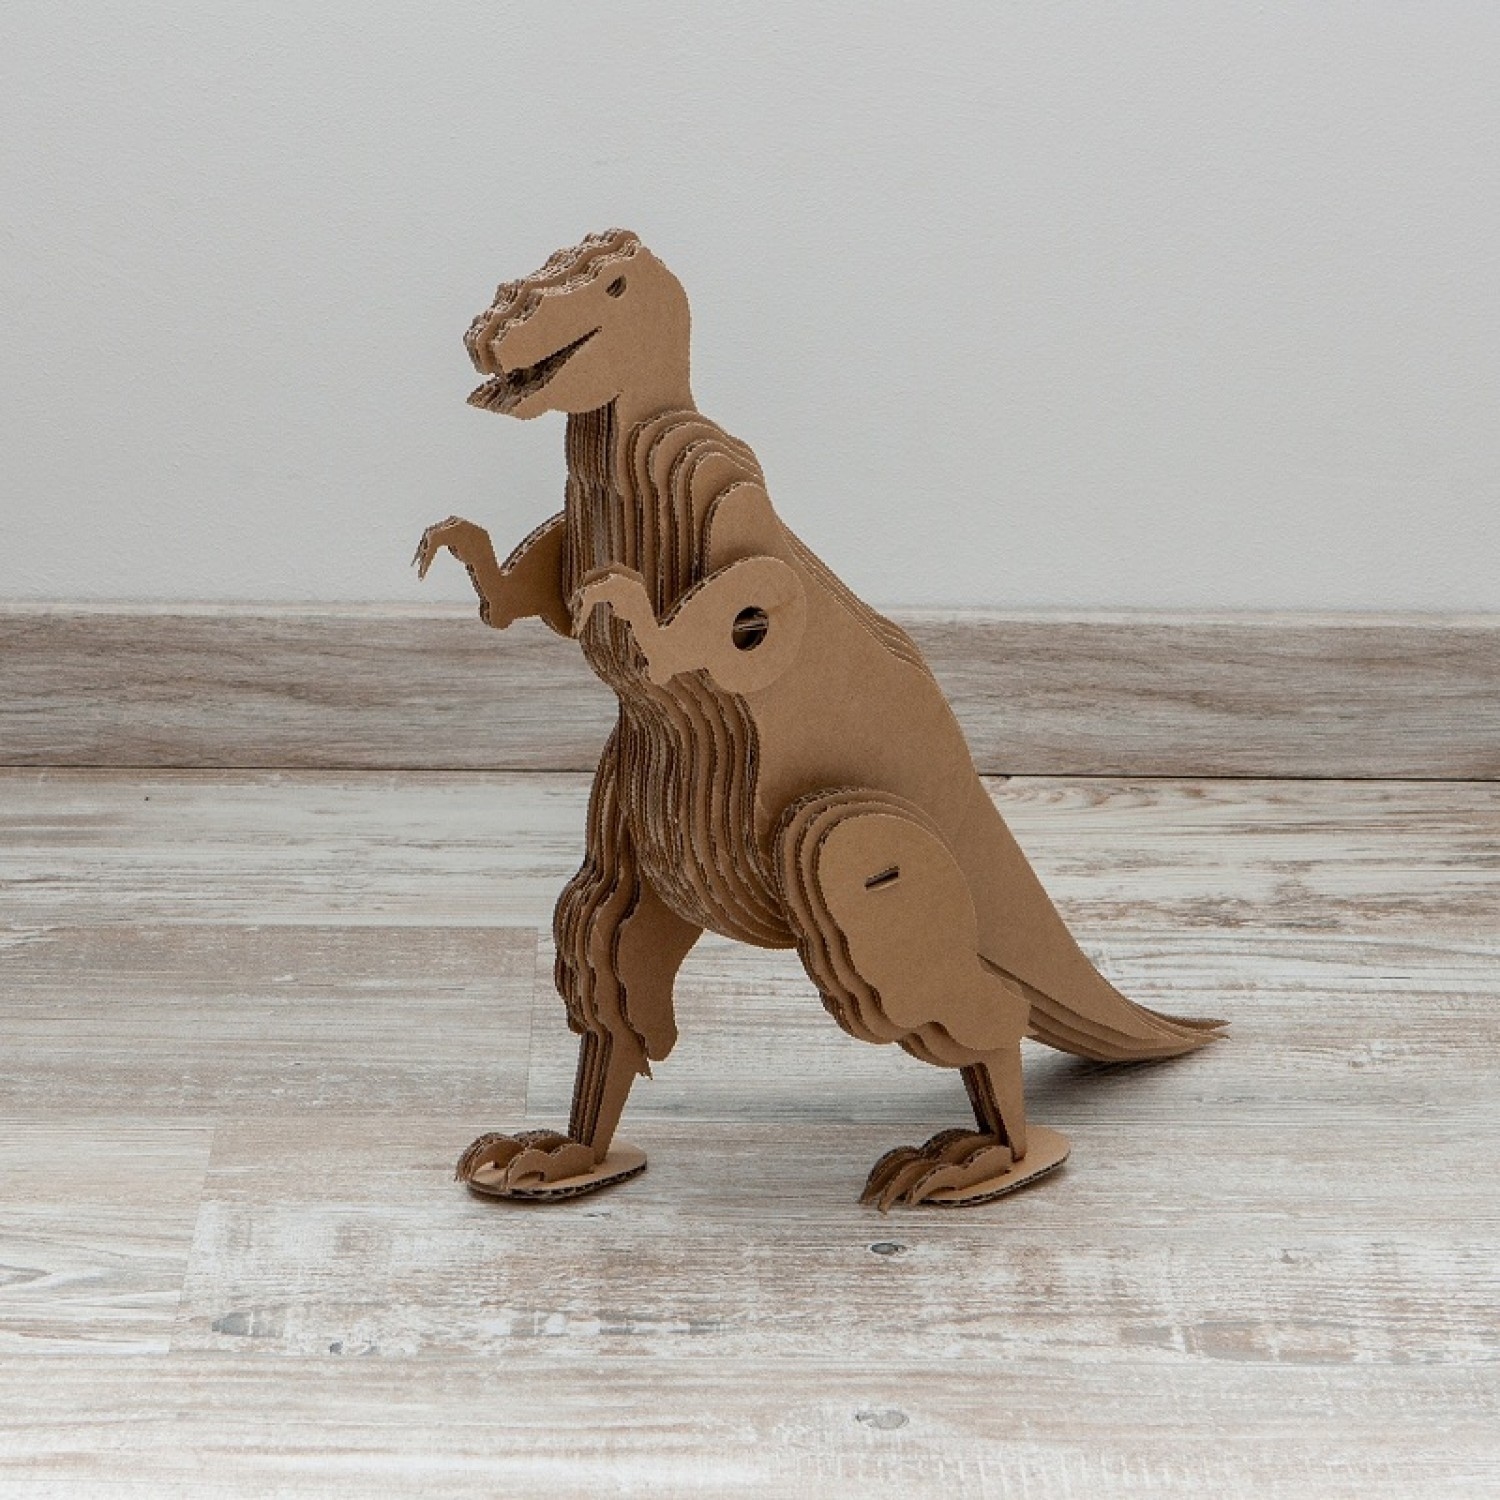 Dinosaur for crafting made of recyclable cardboard